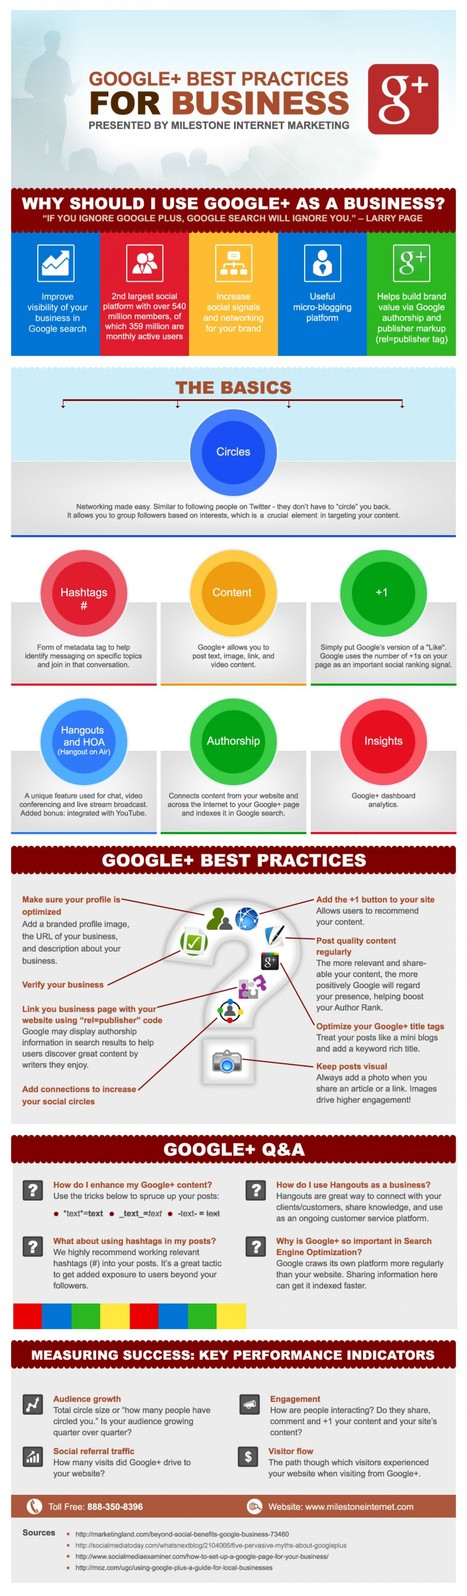 Infographic: How to Use Google+ for Business | Social Media & Marketing | Scoop.it